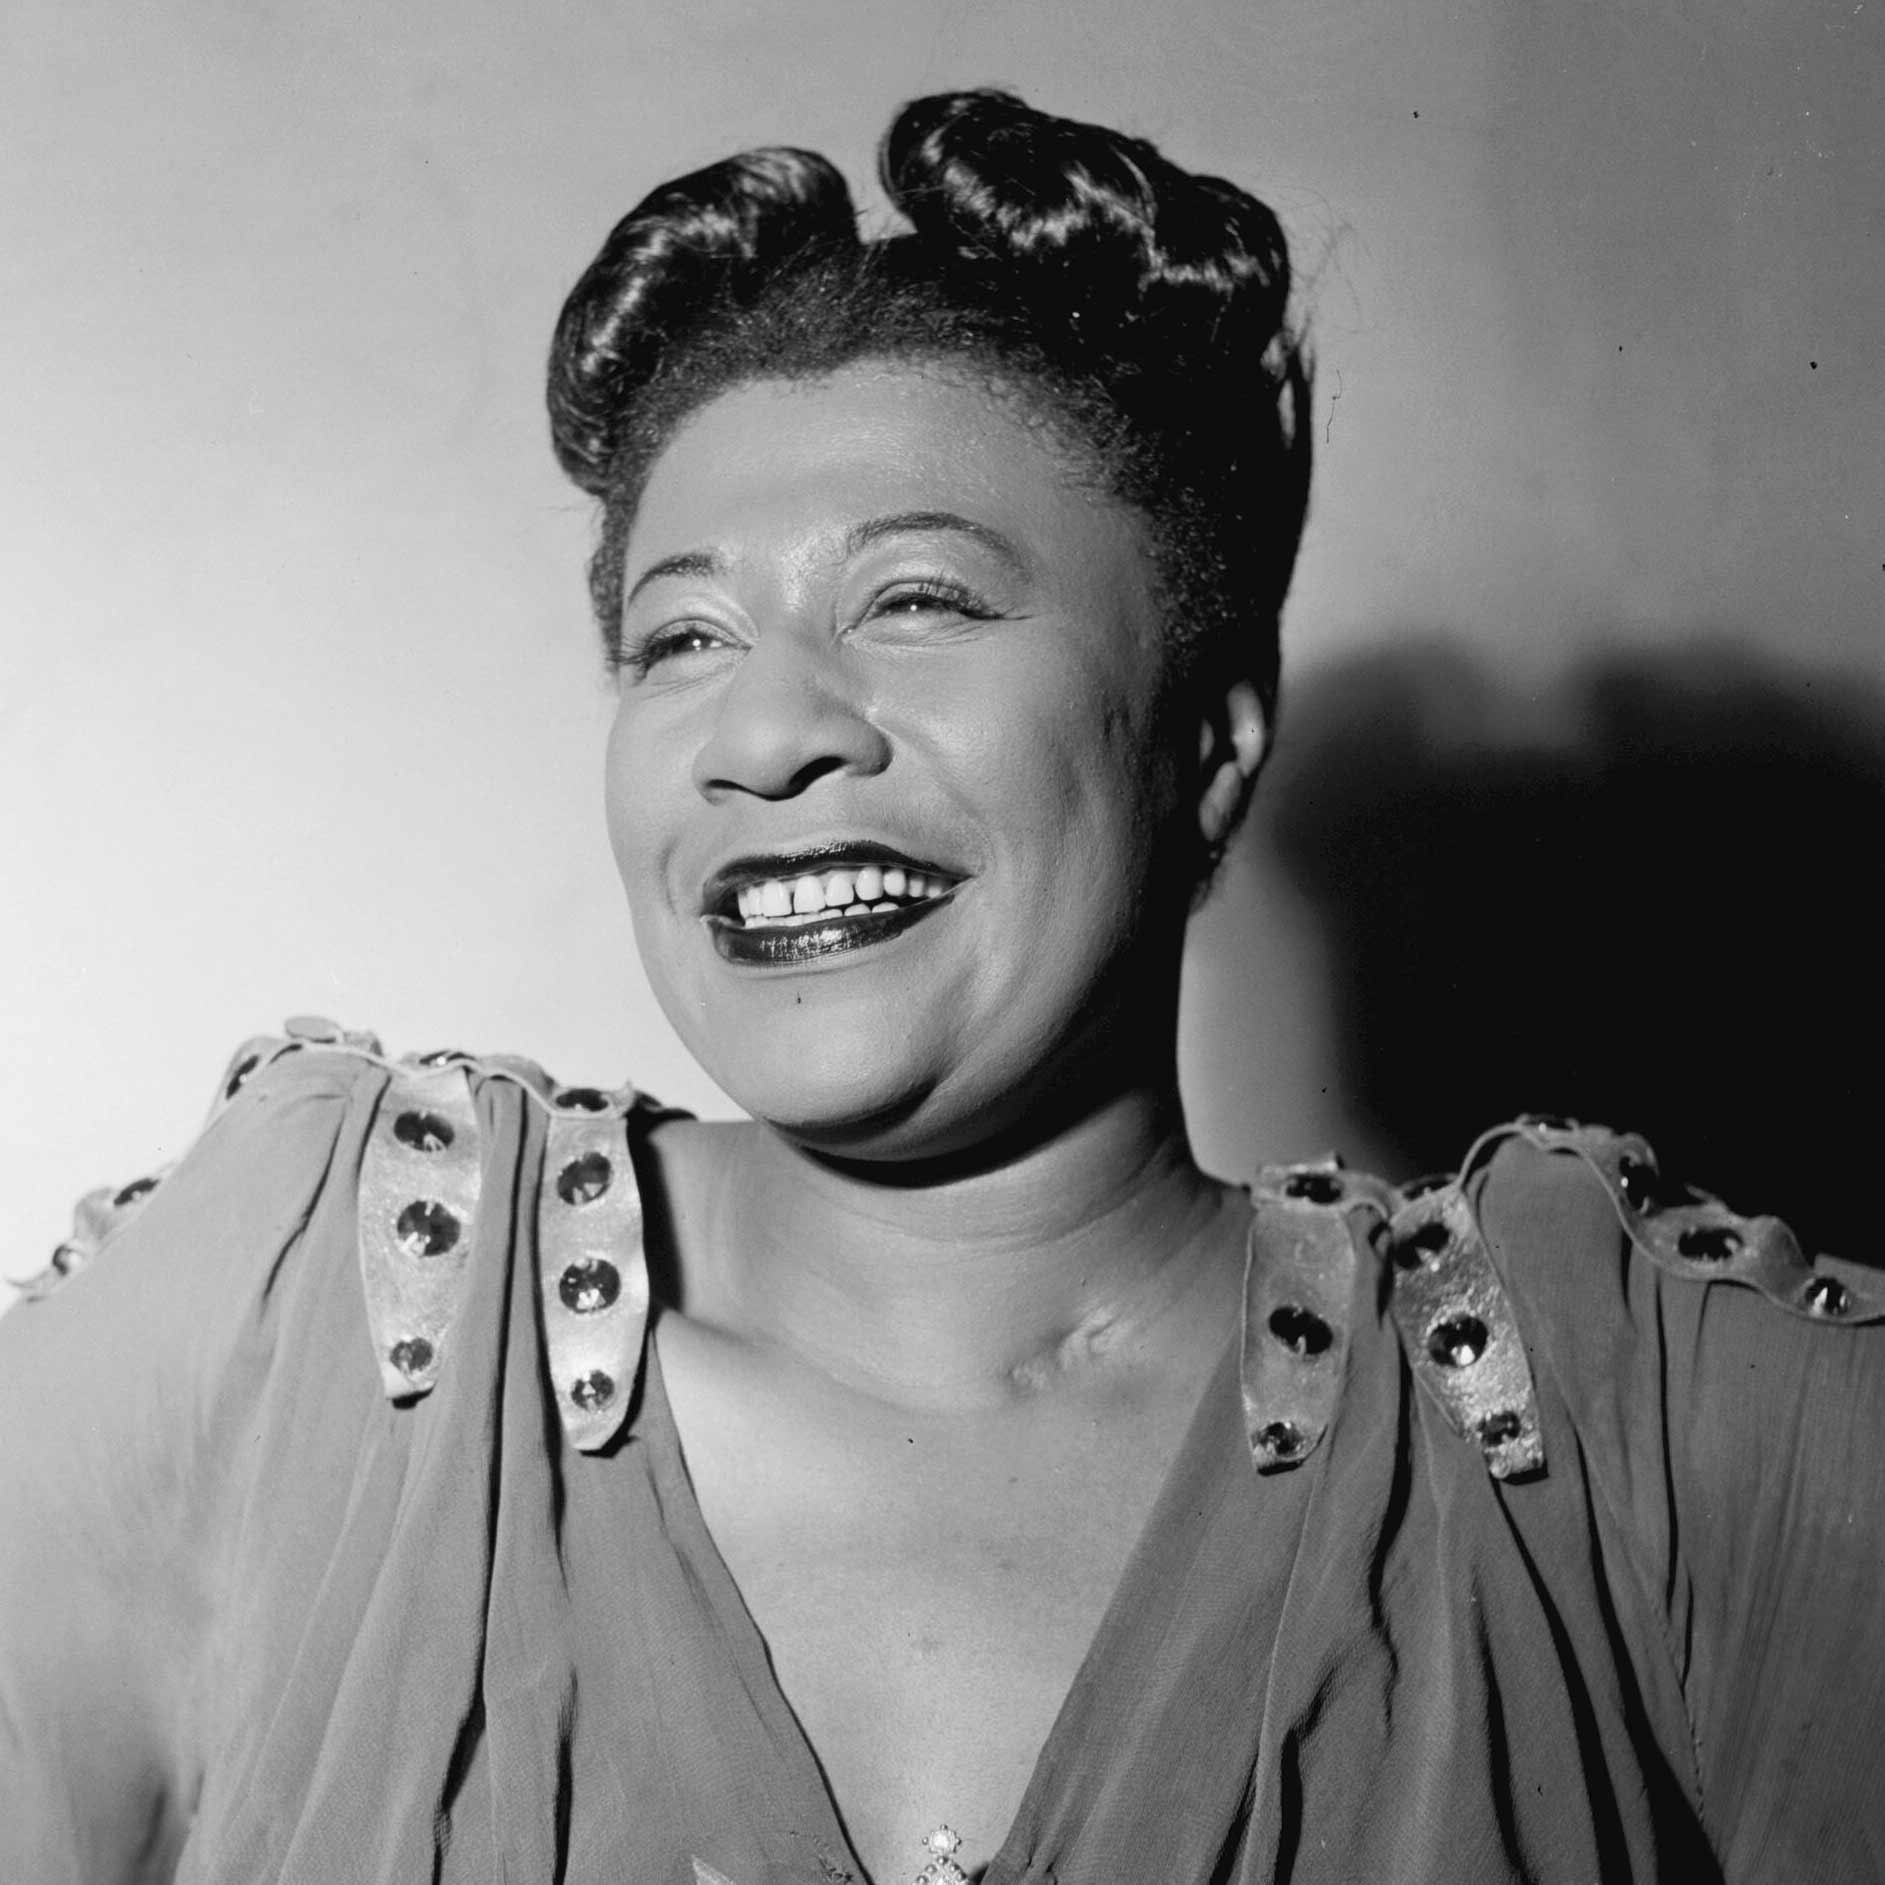 Ella Fitzgerald - August 13, 1938Ella Fitzgerald (voc), Chick Webb (d) Accompanied by unknown personnel from CBS Studio Orchestra4. A-Tisket, A-Tasket5. I've Been Saving Myself for You